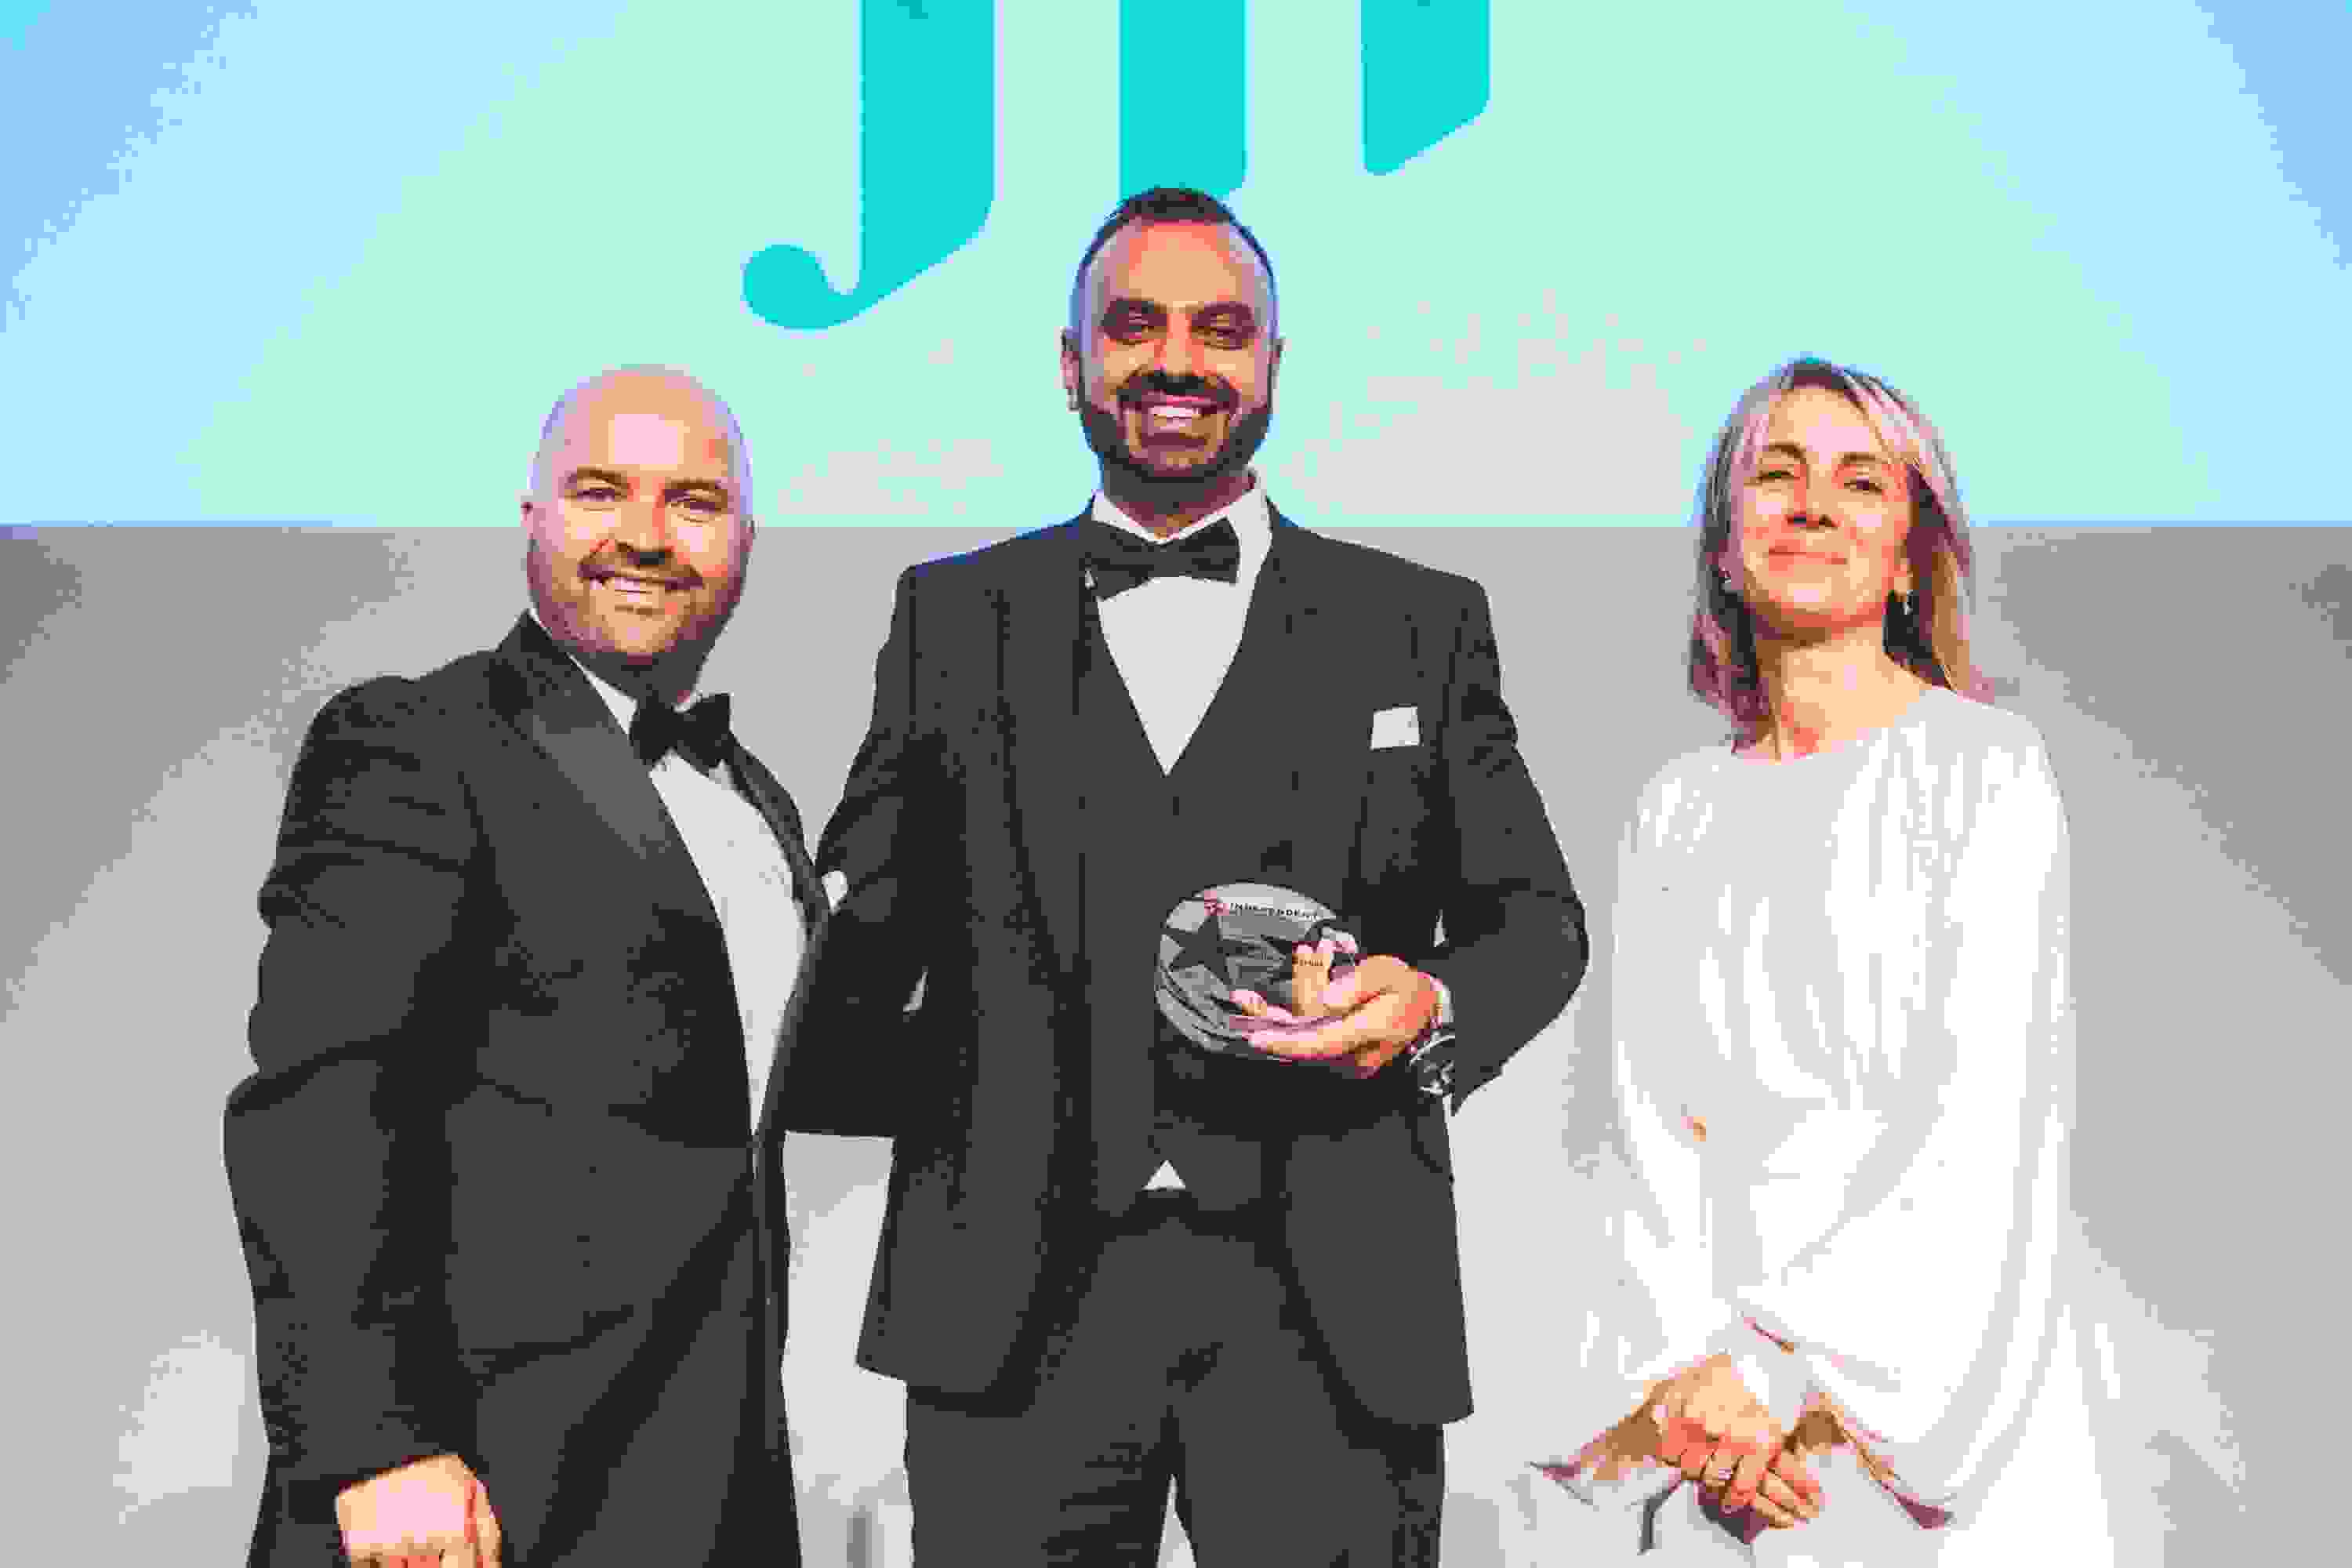 Woodhouse Street lands two awards in one week